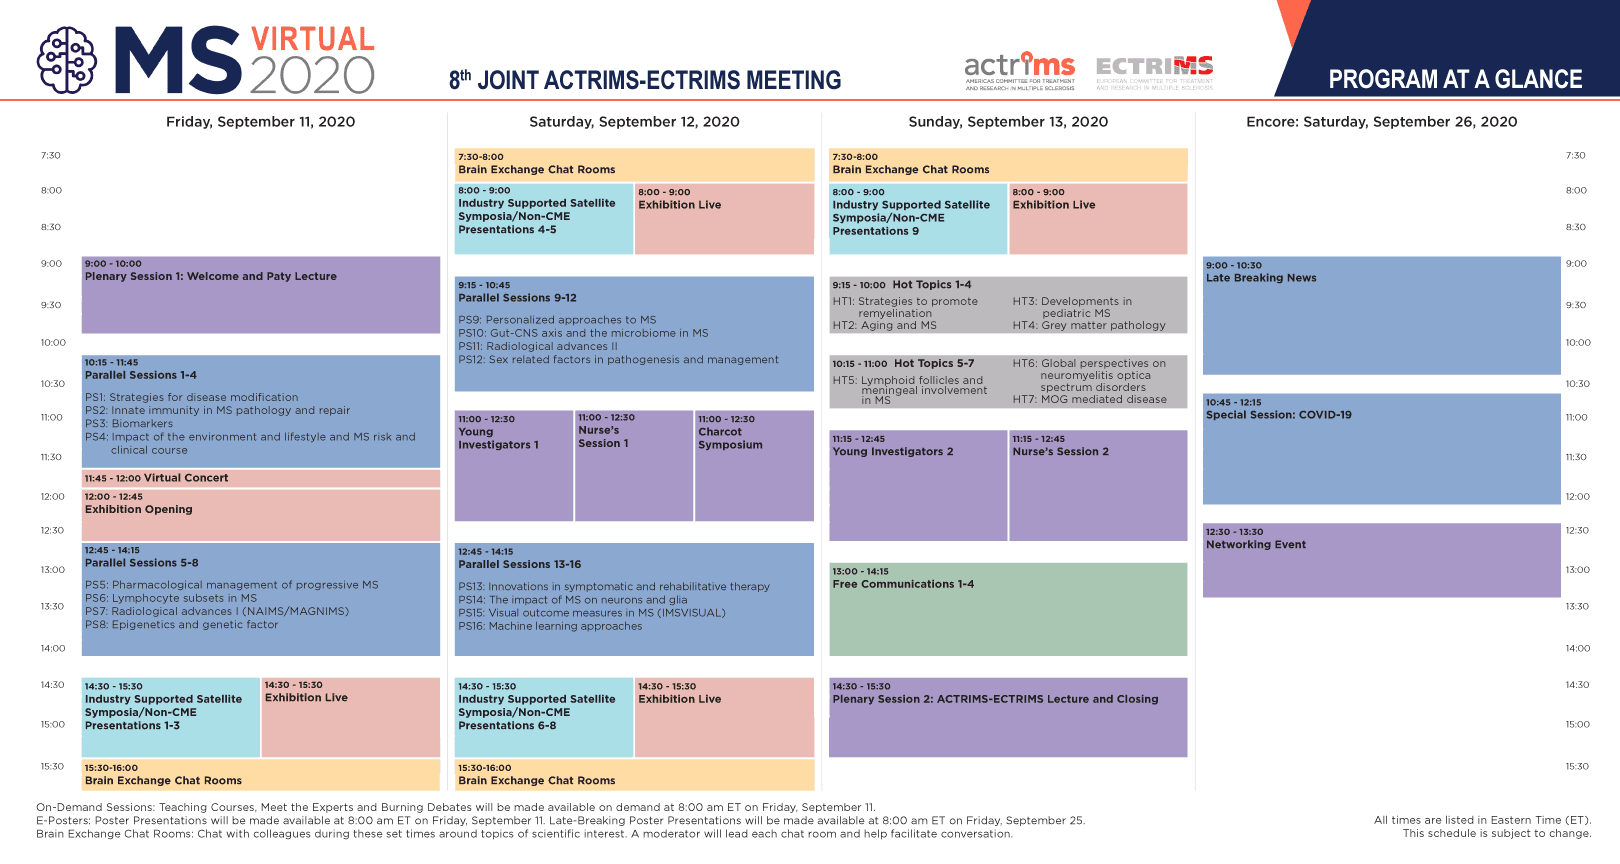 ACTRIMS-ECTRIMS: Program at a Glance